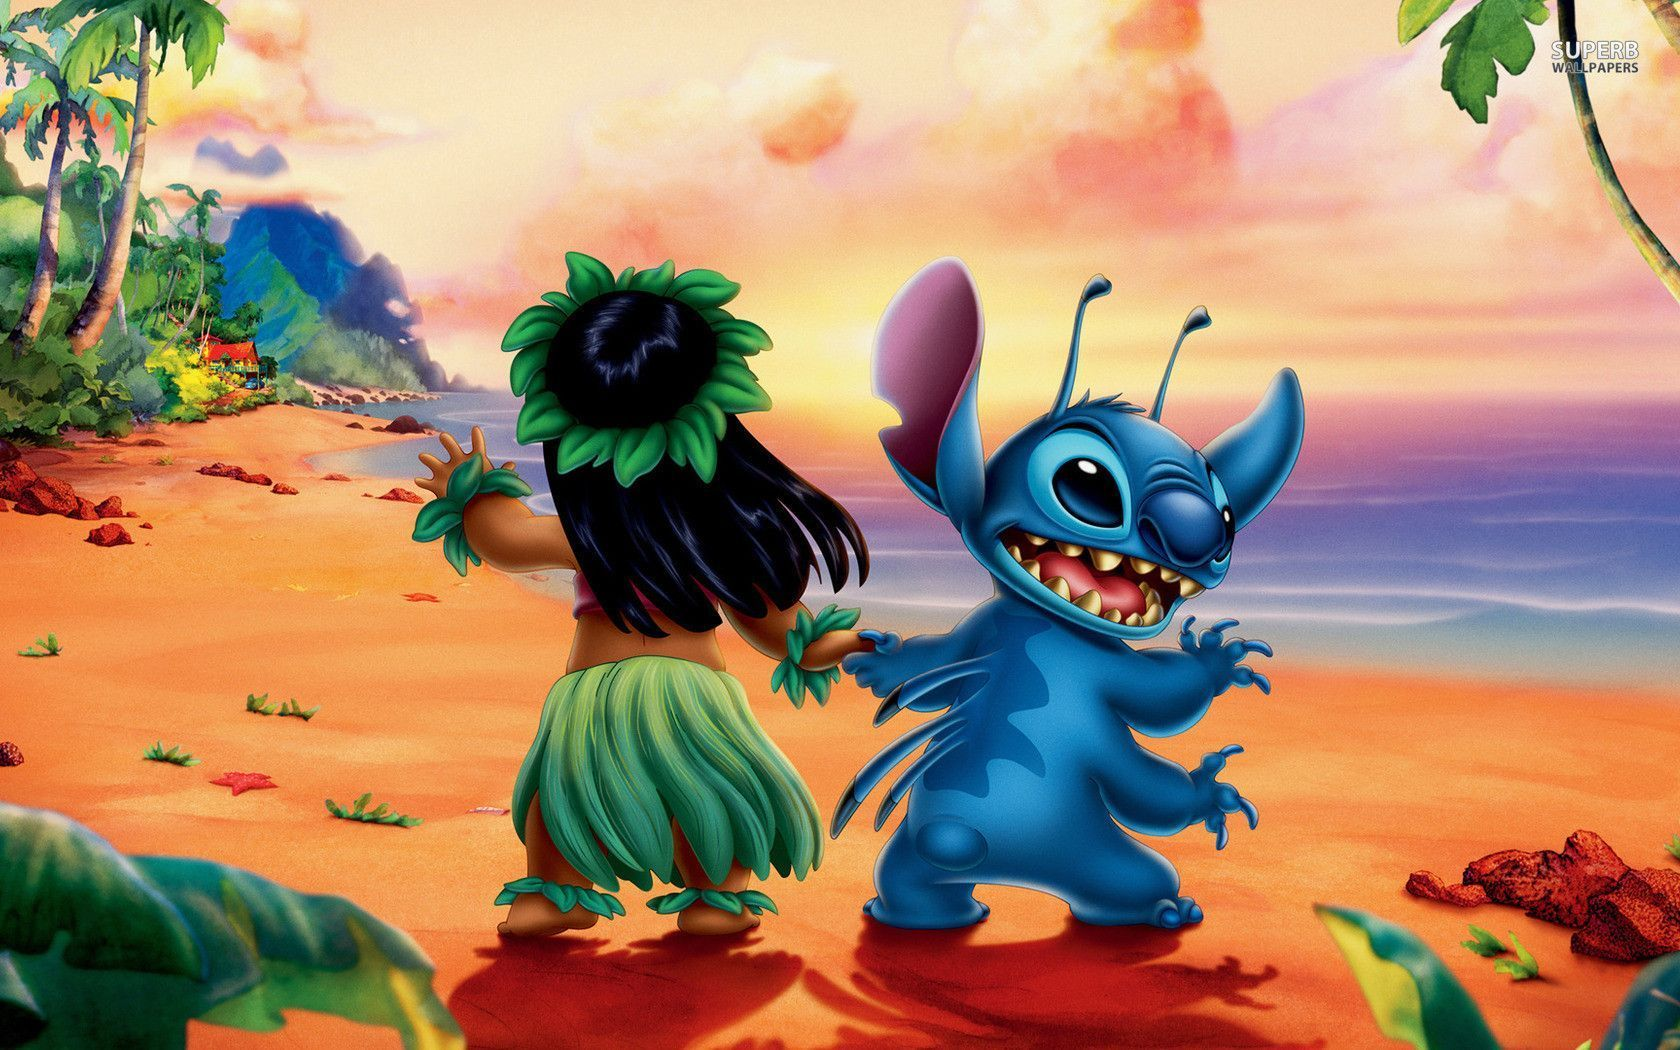 1680x1050 Lilo & Stitch Wallpaper Cartoon Wallpapers # Awesome Lilo And Stitch ...